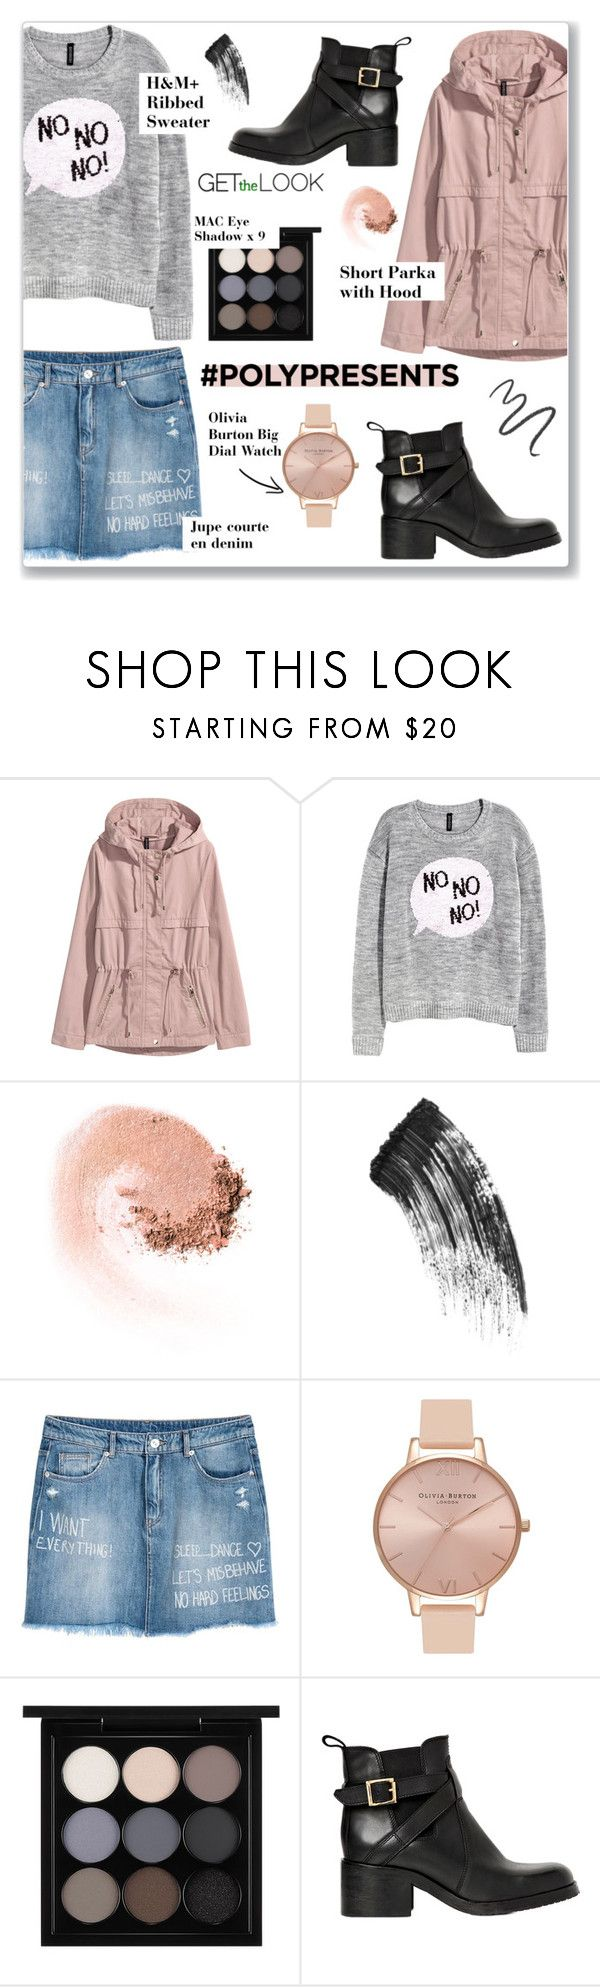 """""""#PolyPresents: Wish List"""" by arwaroro48 ❤ liked on Polyvore featuring H&M, NARS Cosmetics, Charlotte Tilbury, Olivia Burton, MAC Cosmetics, Carvela Kurt Geiger, Maybelline, contestentry and polyPresents"""